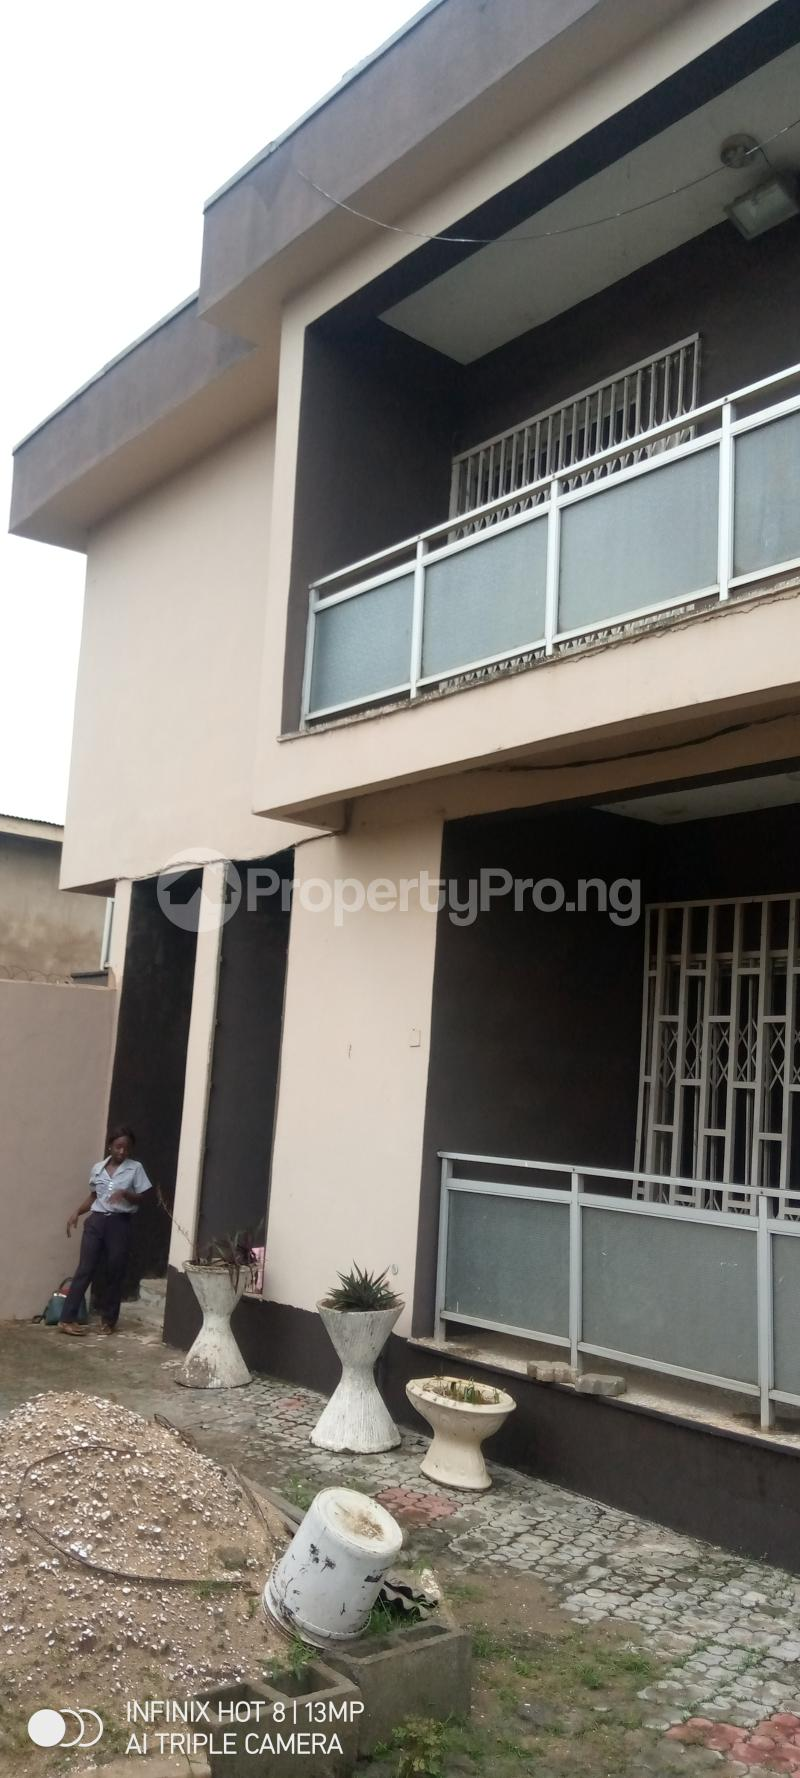 5 bedroom Detached Duplex House for sale Ago palace way Isolo Lagos - 5